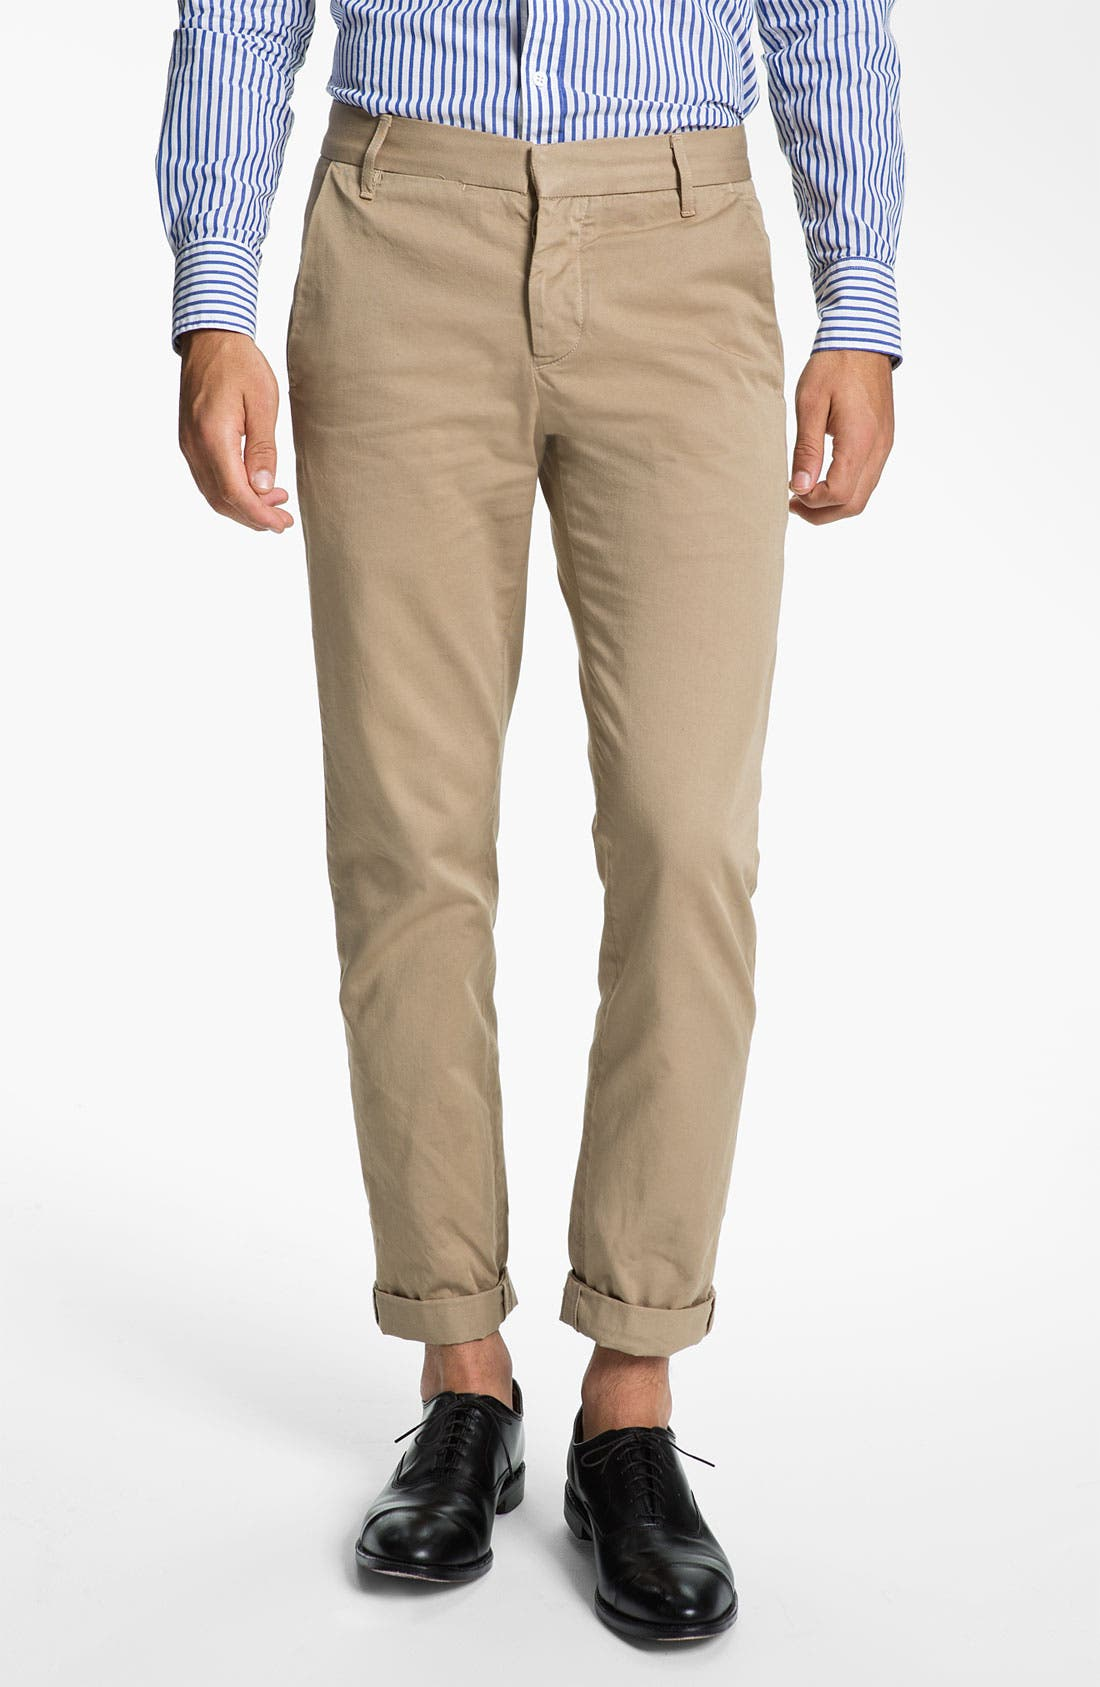 Main Image - Band of Outsiders Slim Fit Twill Cotton Chinos